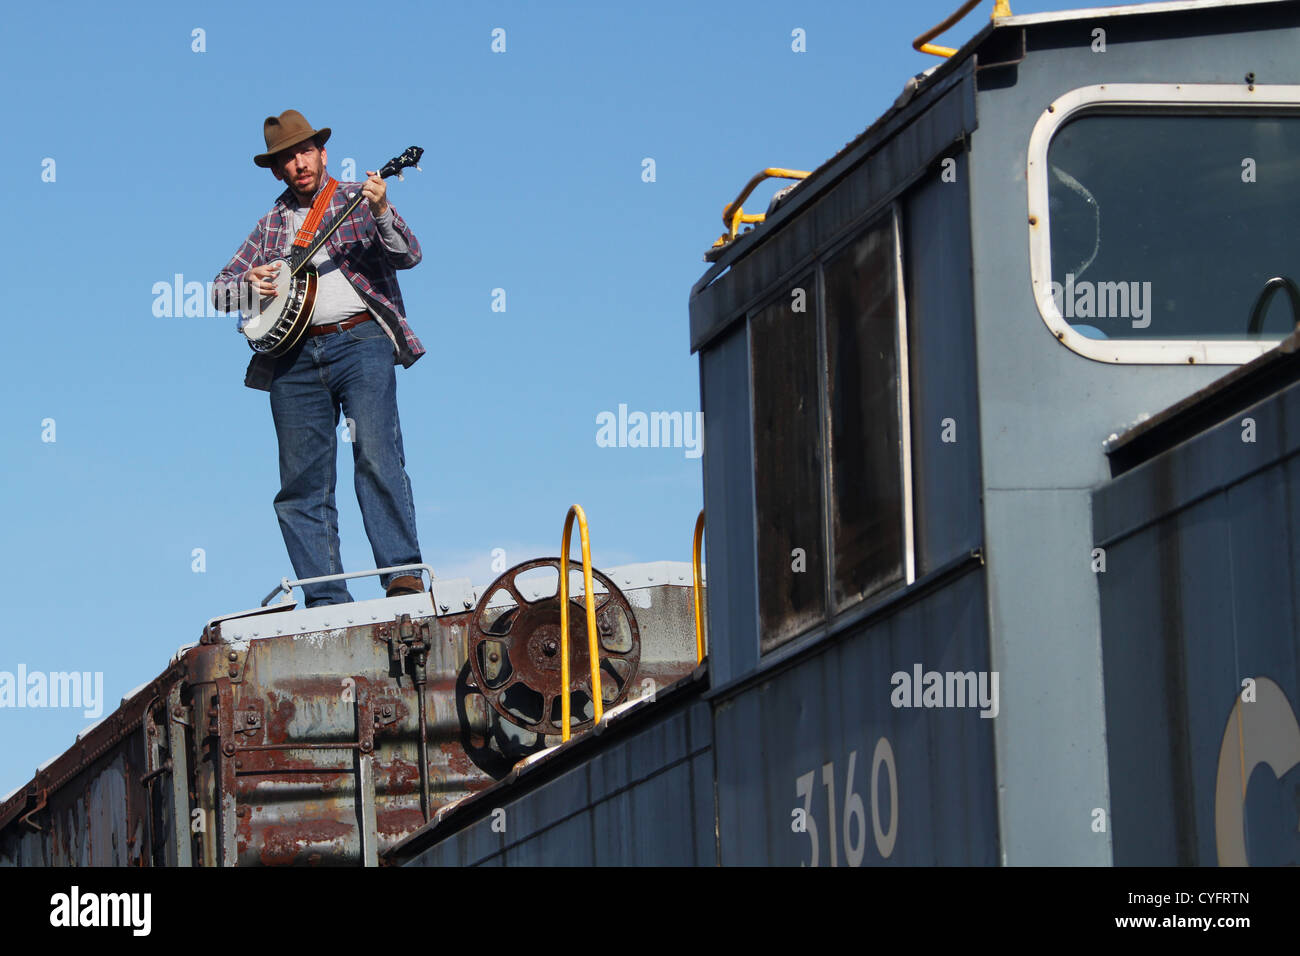 Male model as a hobo playing banjo while standing on a railroad box car. - Stock Image